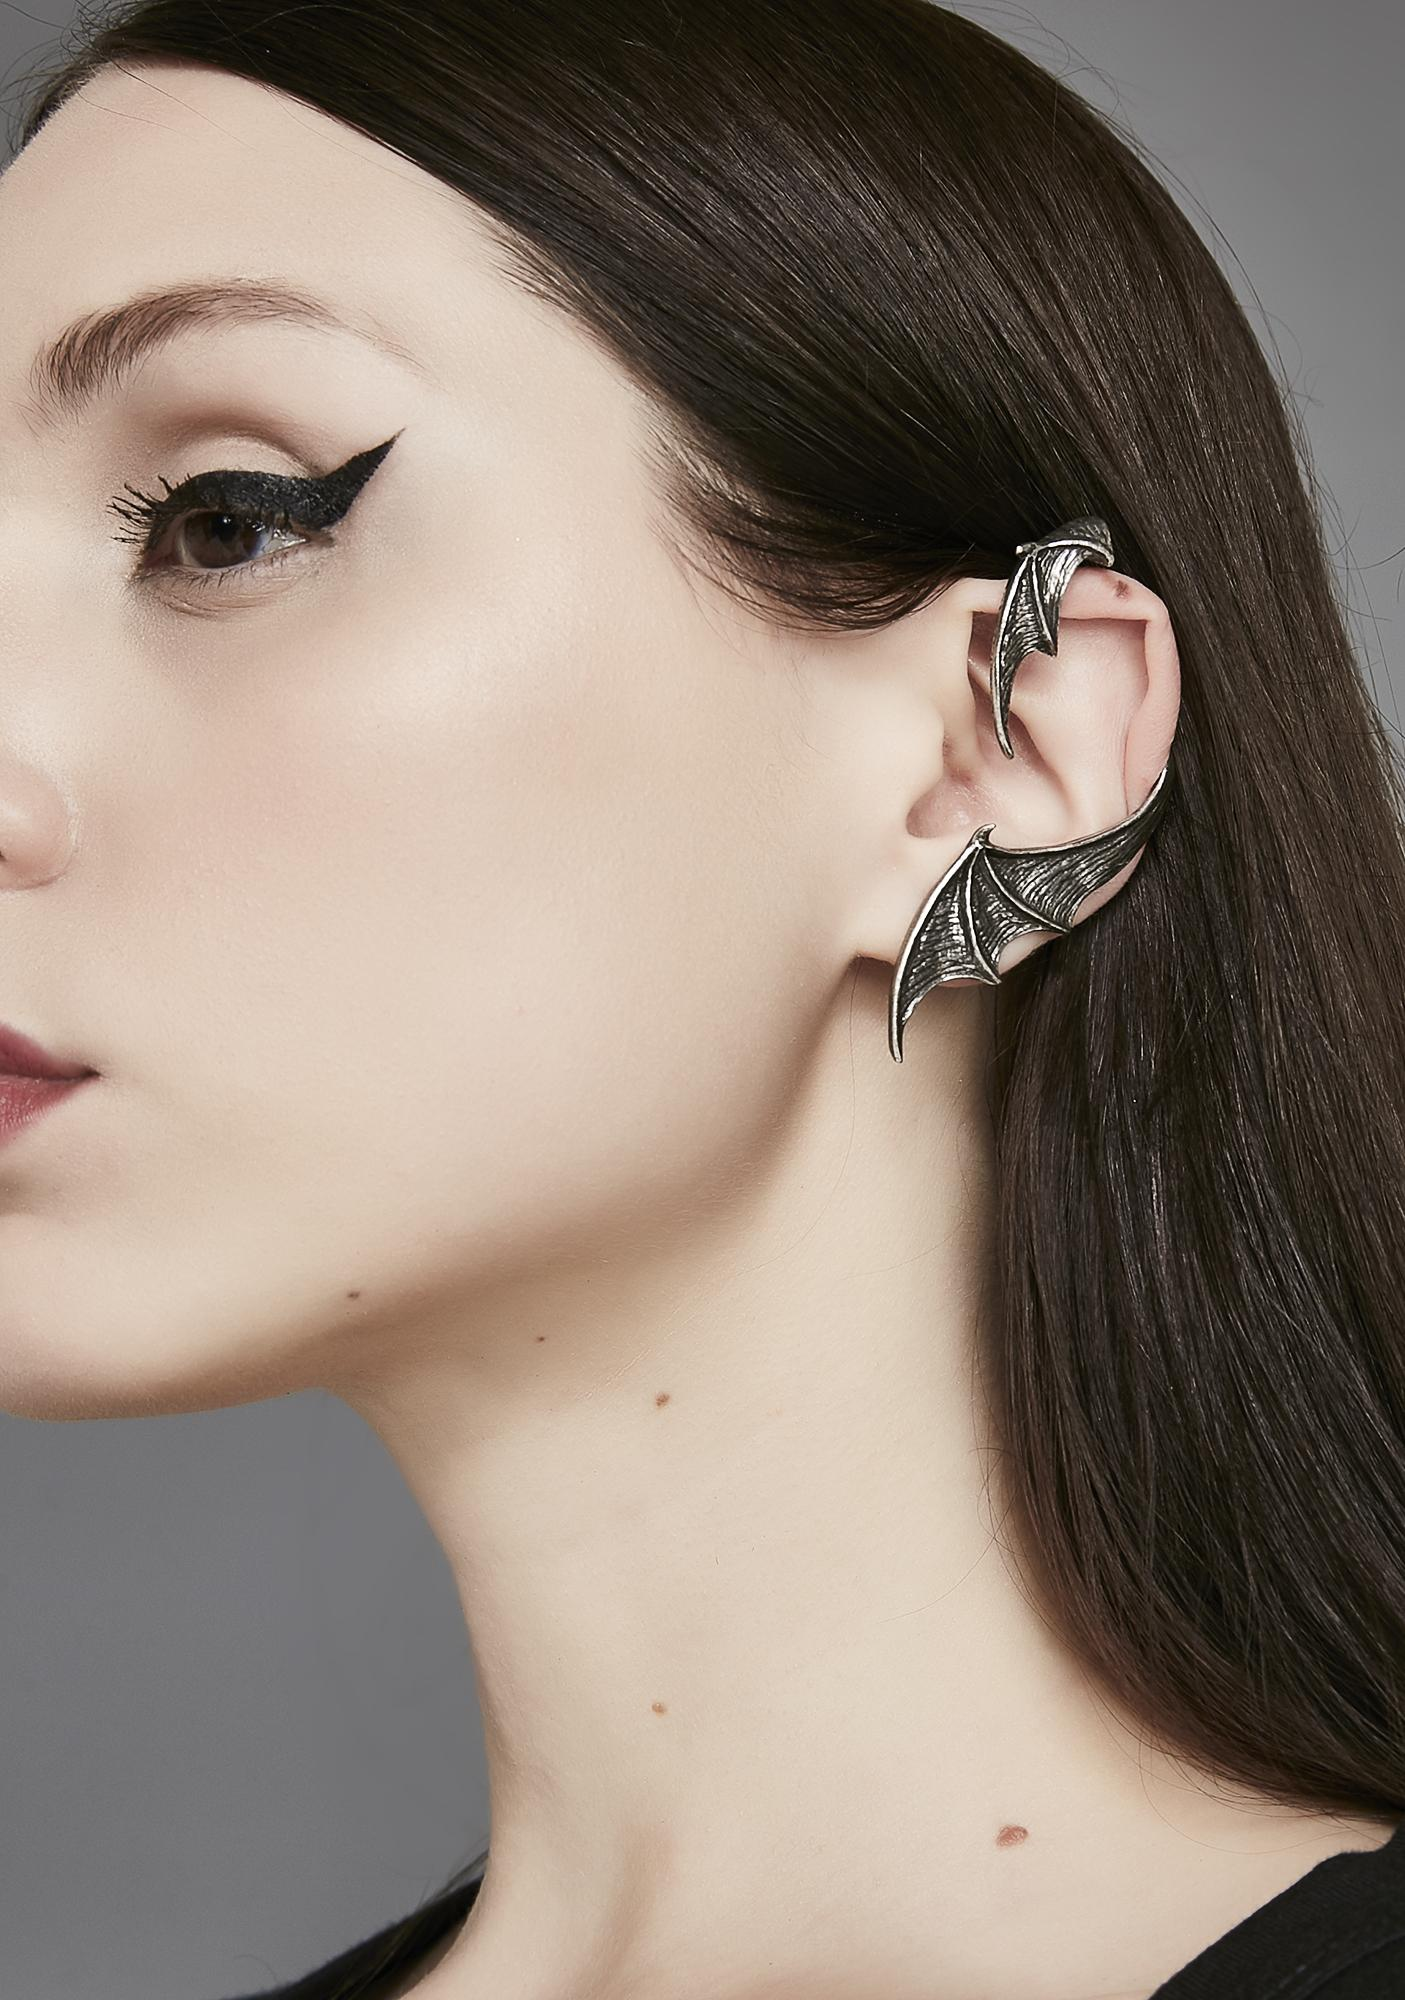 A Night With Goethe Ear Cuff